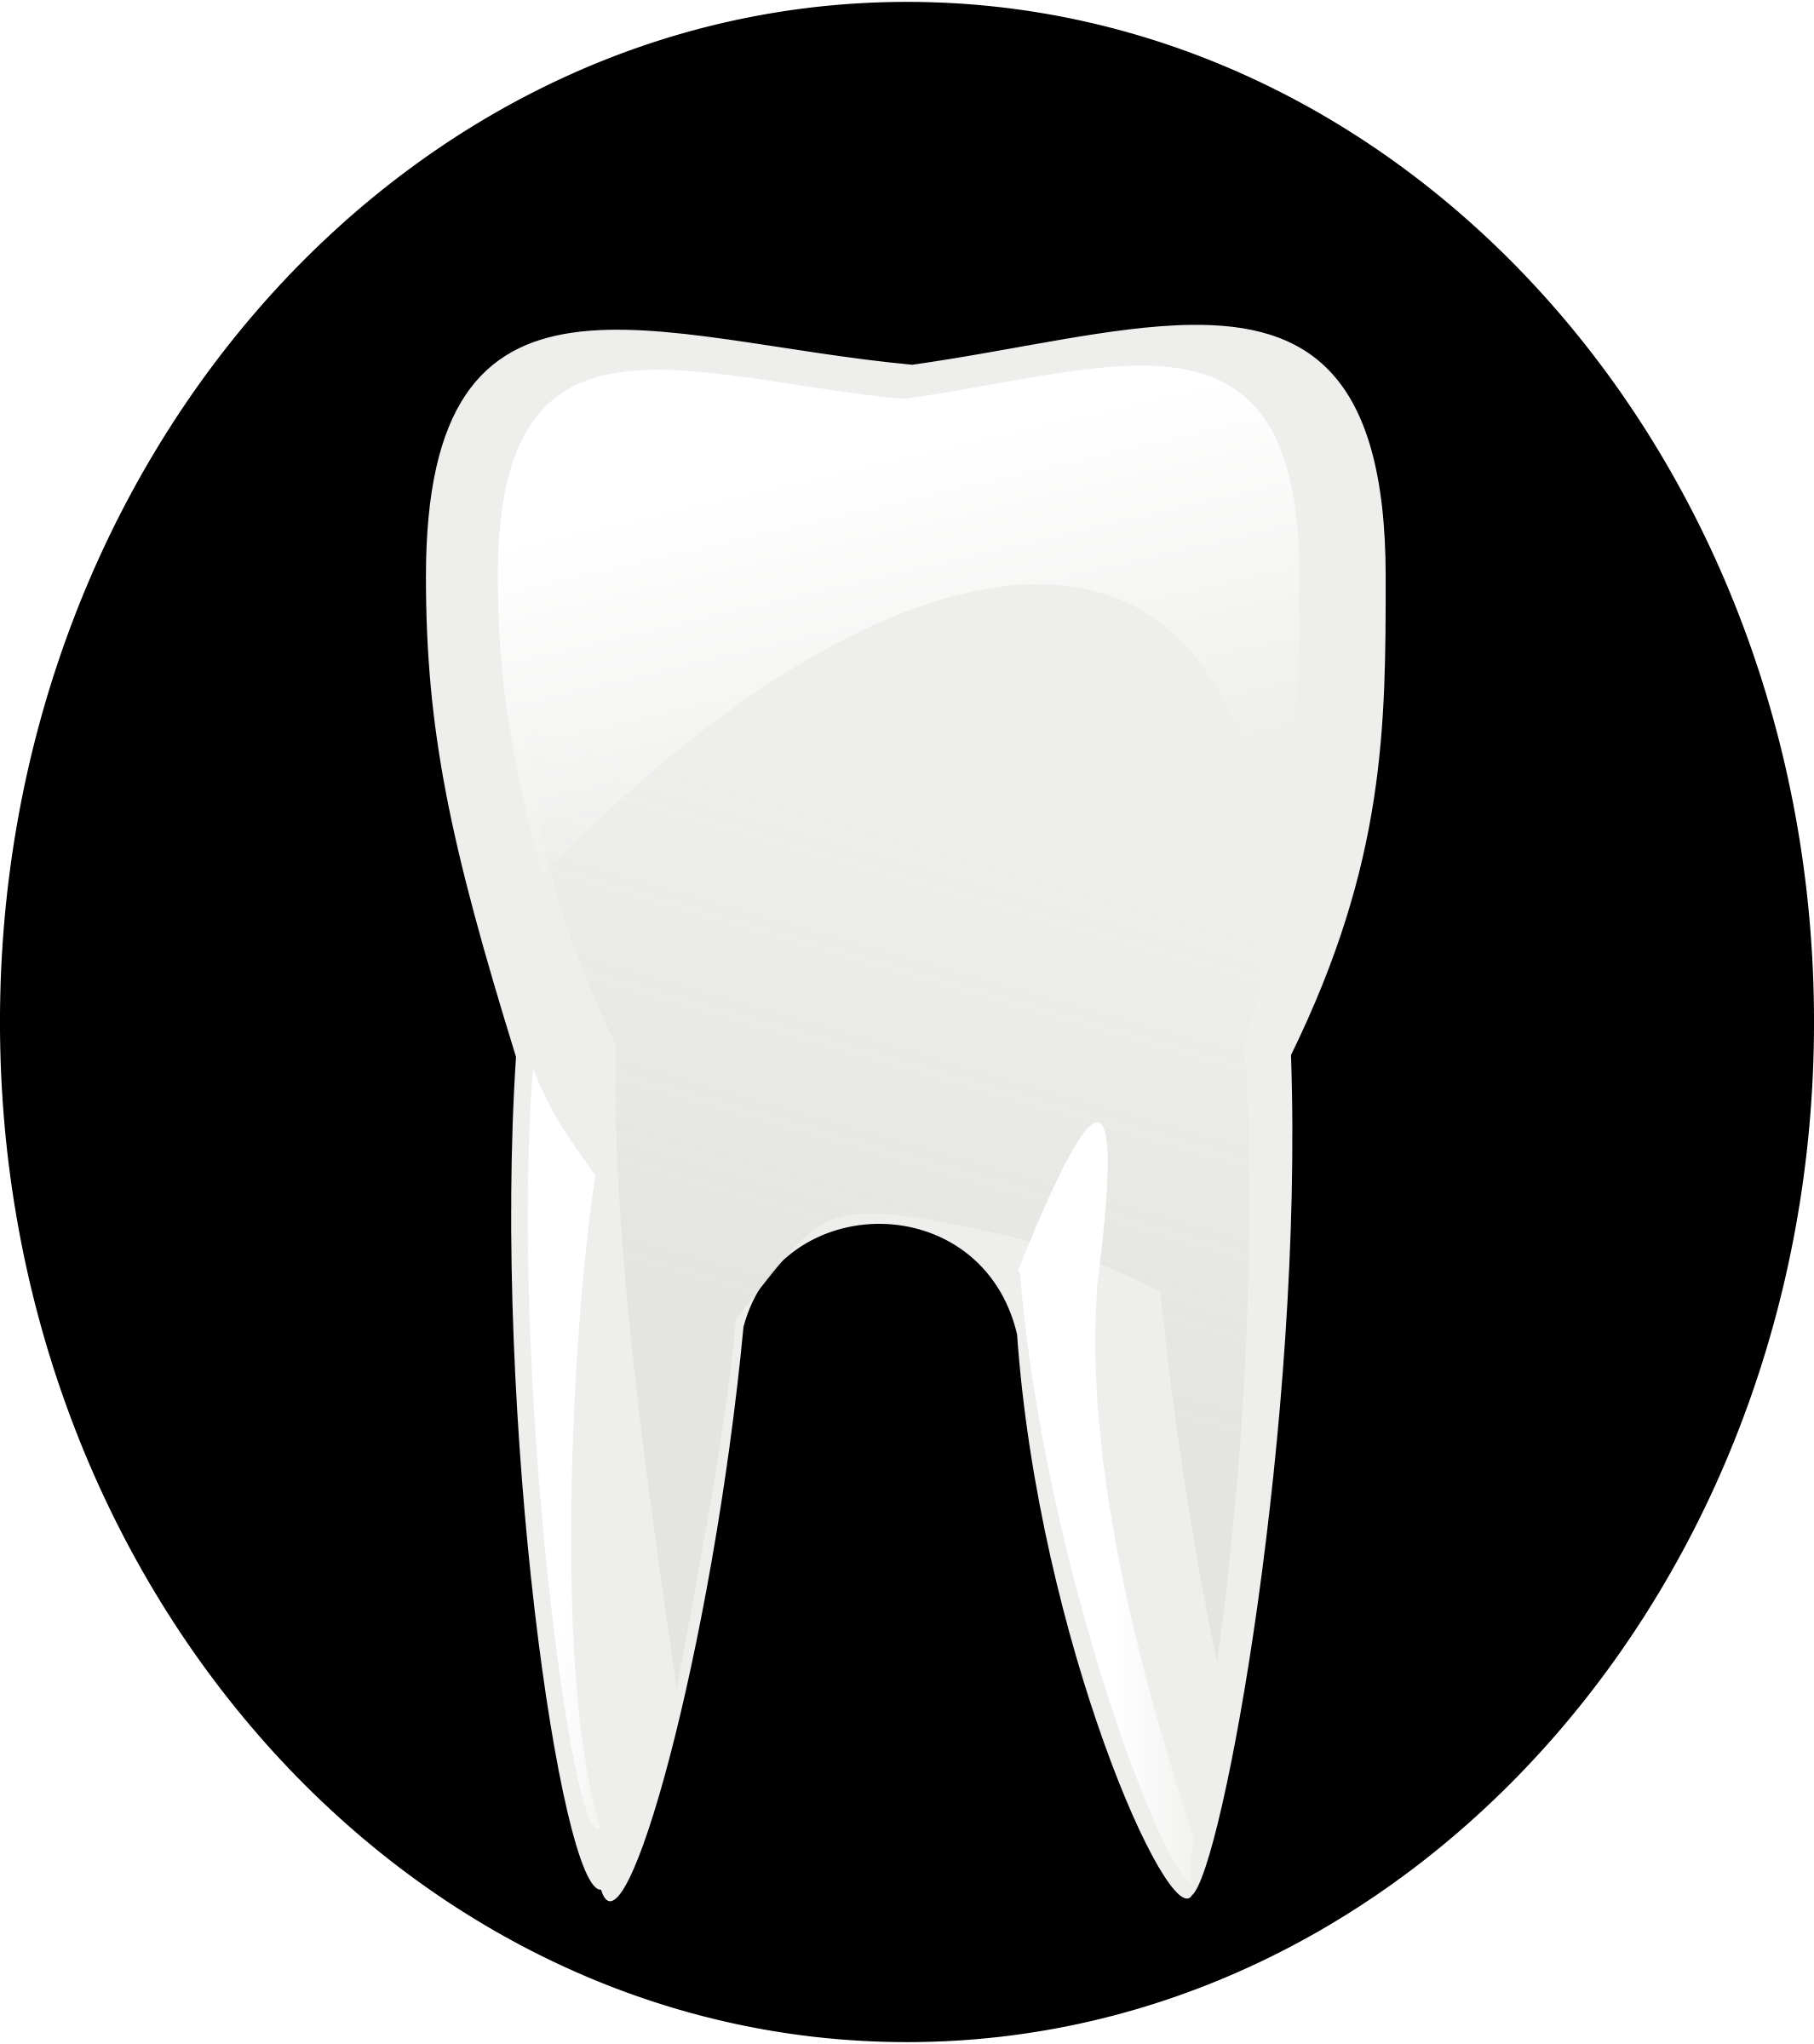 28+ Collection of Dental Clipart Logo | High quality, free cliparts ... transparent library